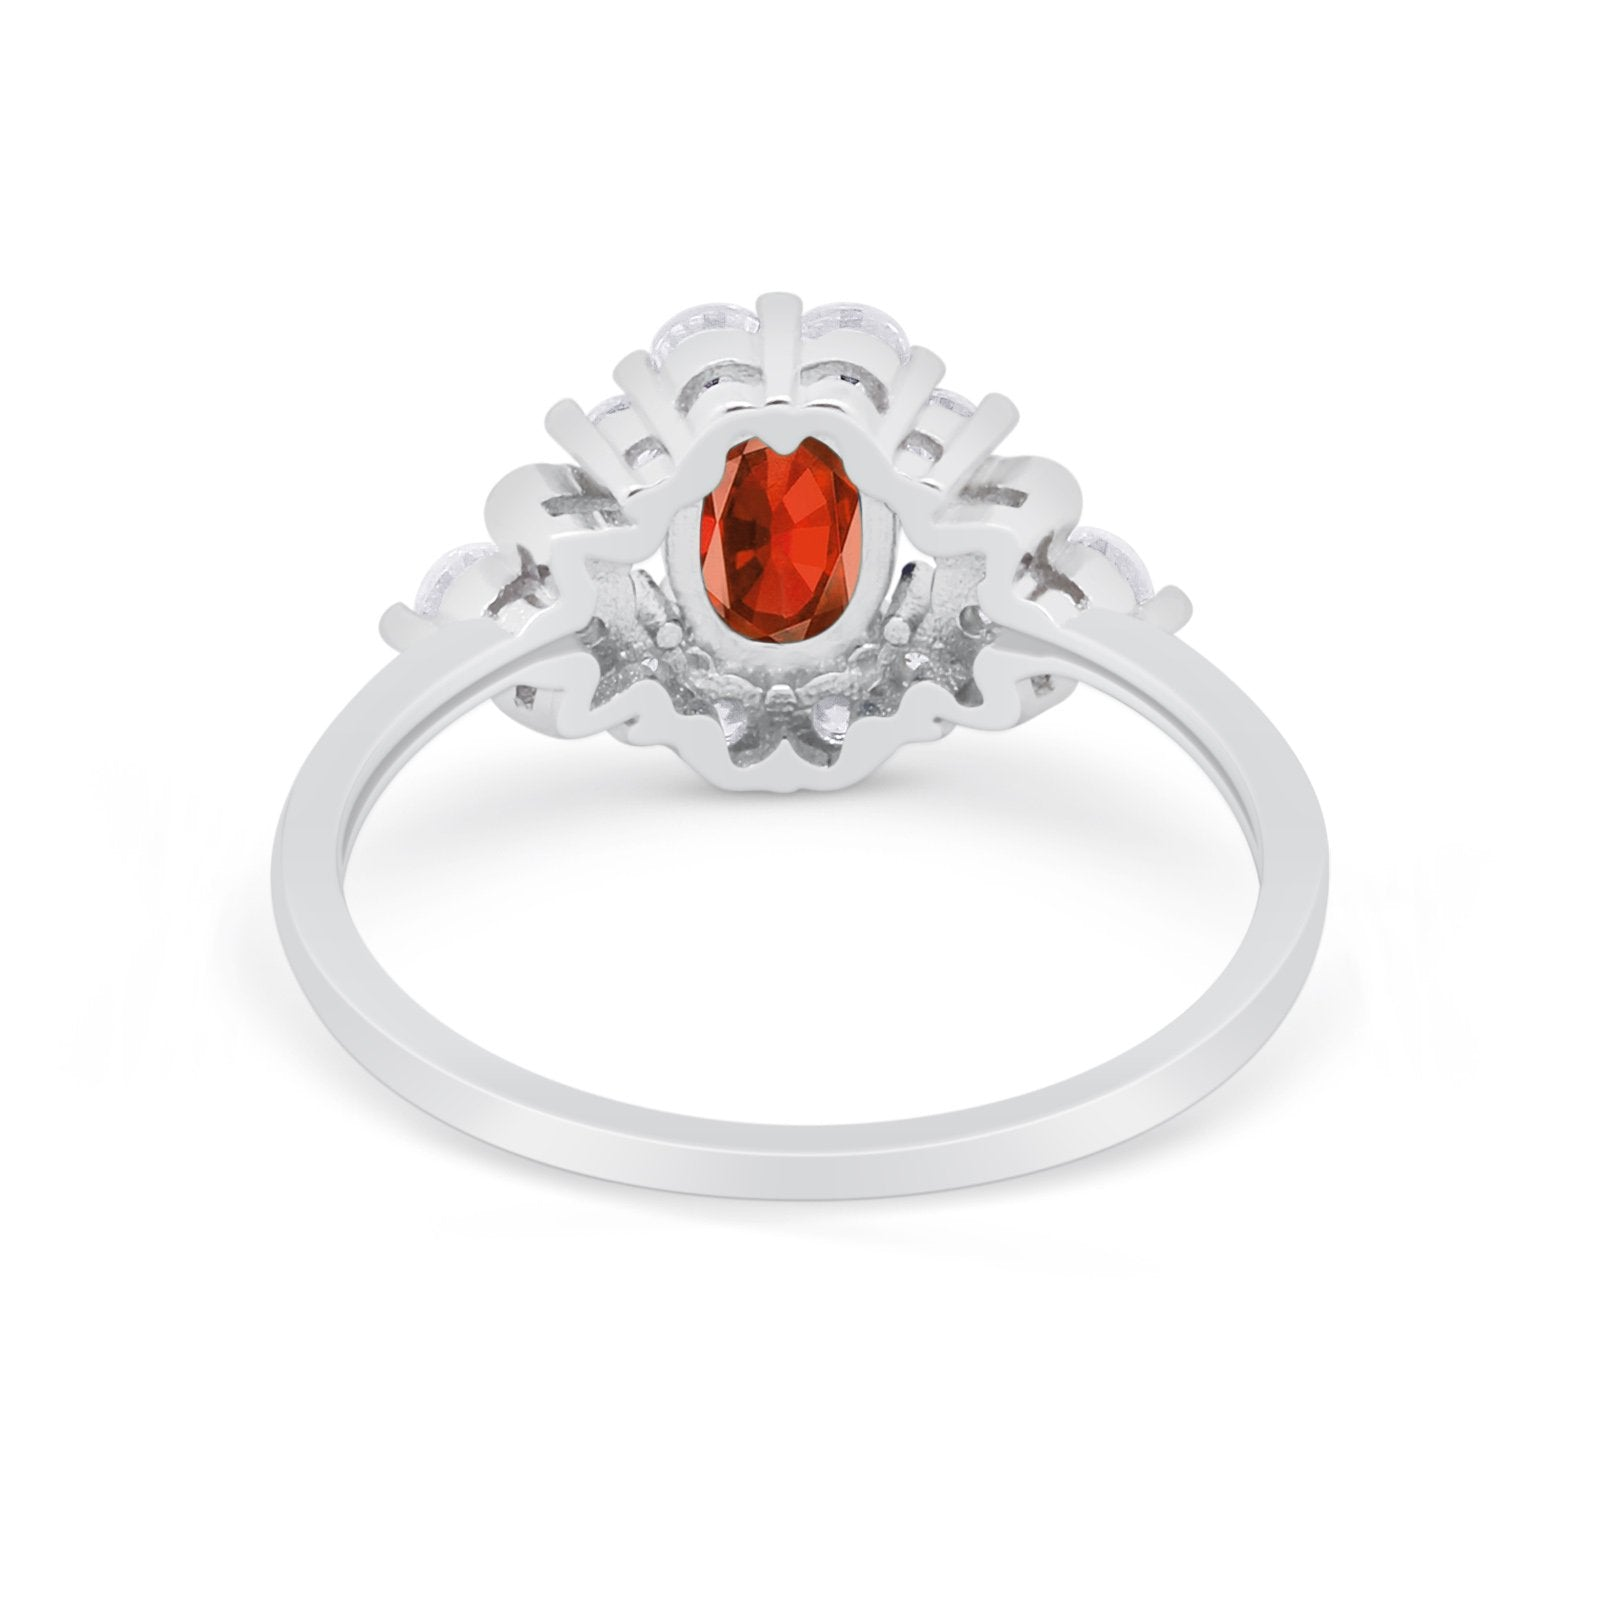 Oval Wedding Ring Vintage Art Deco Round Simulated Garnet CZ 925 Sterling Silver